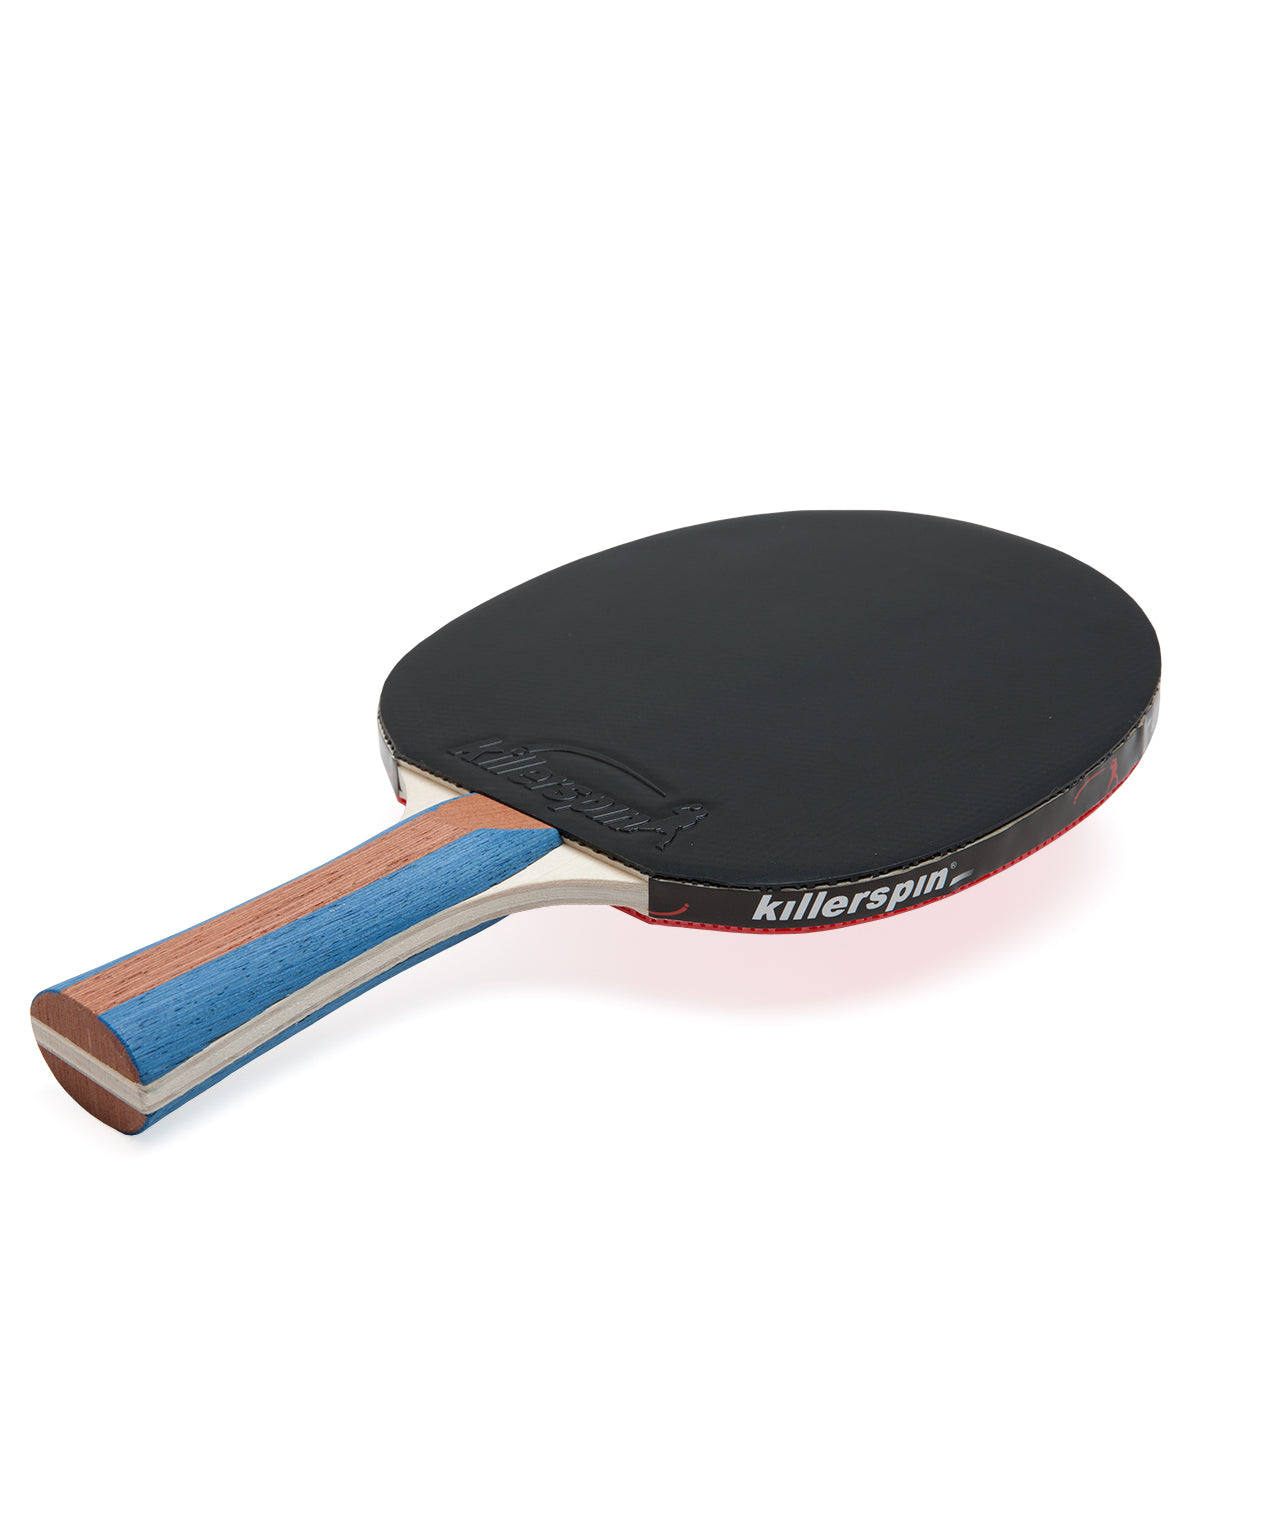 Killerspin Ping Pong Paddle Set JetSet2 - Black Rubber